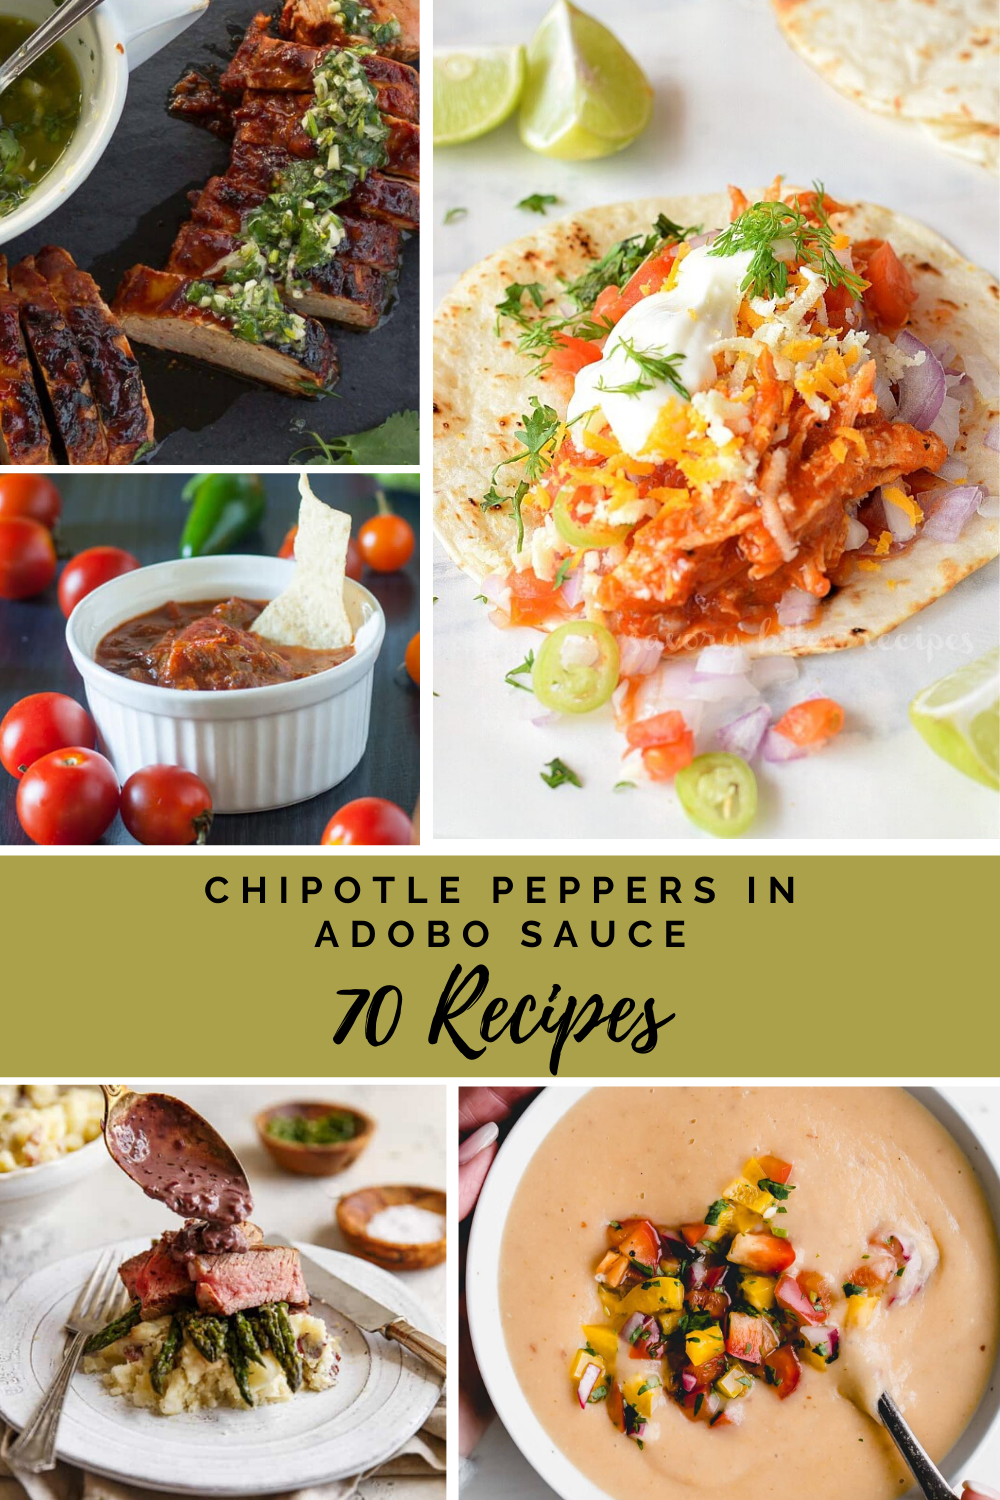 70 Recipes With Chipotle Peppers in Adobo Sauce